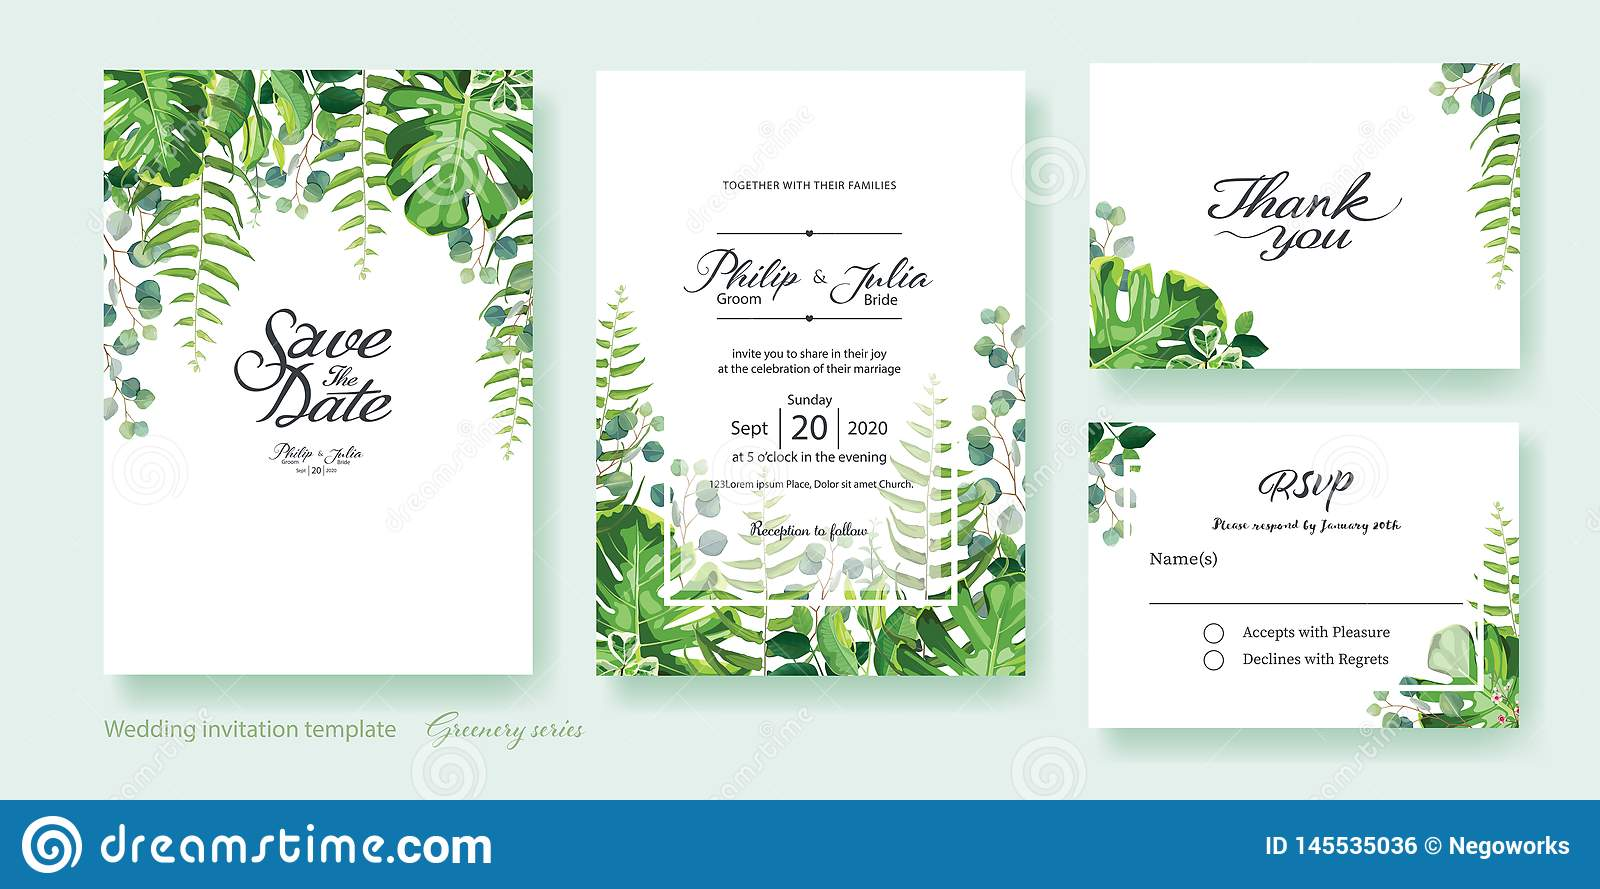 Greenery Wedding Invitation Save The Date Thank You Rsvp